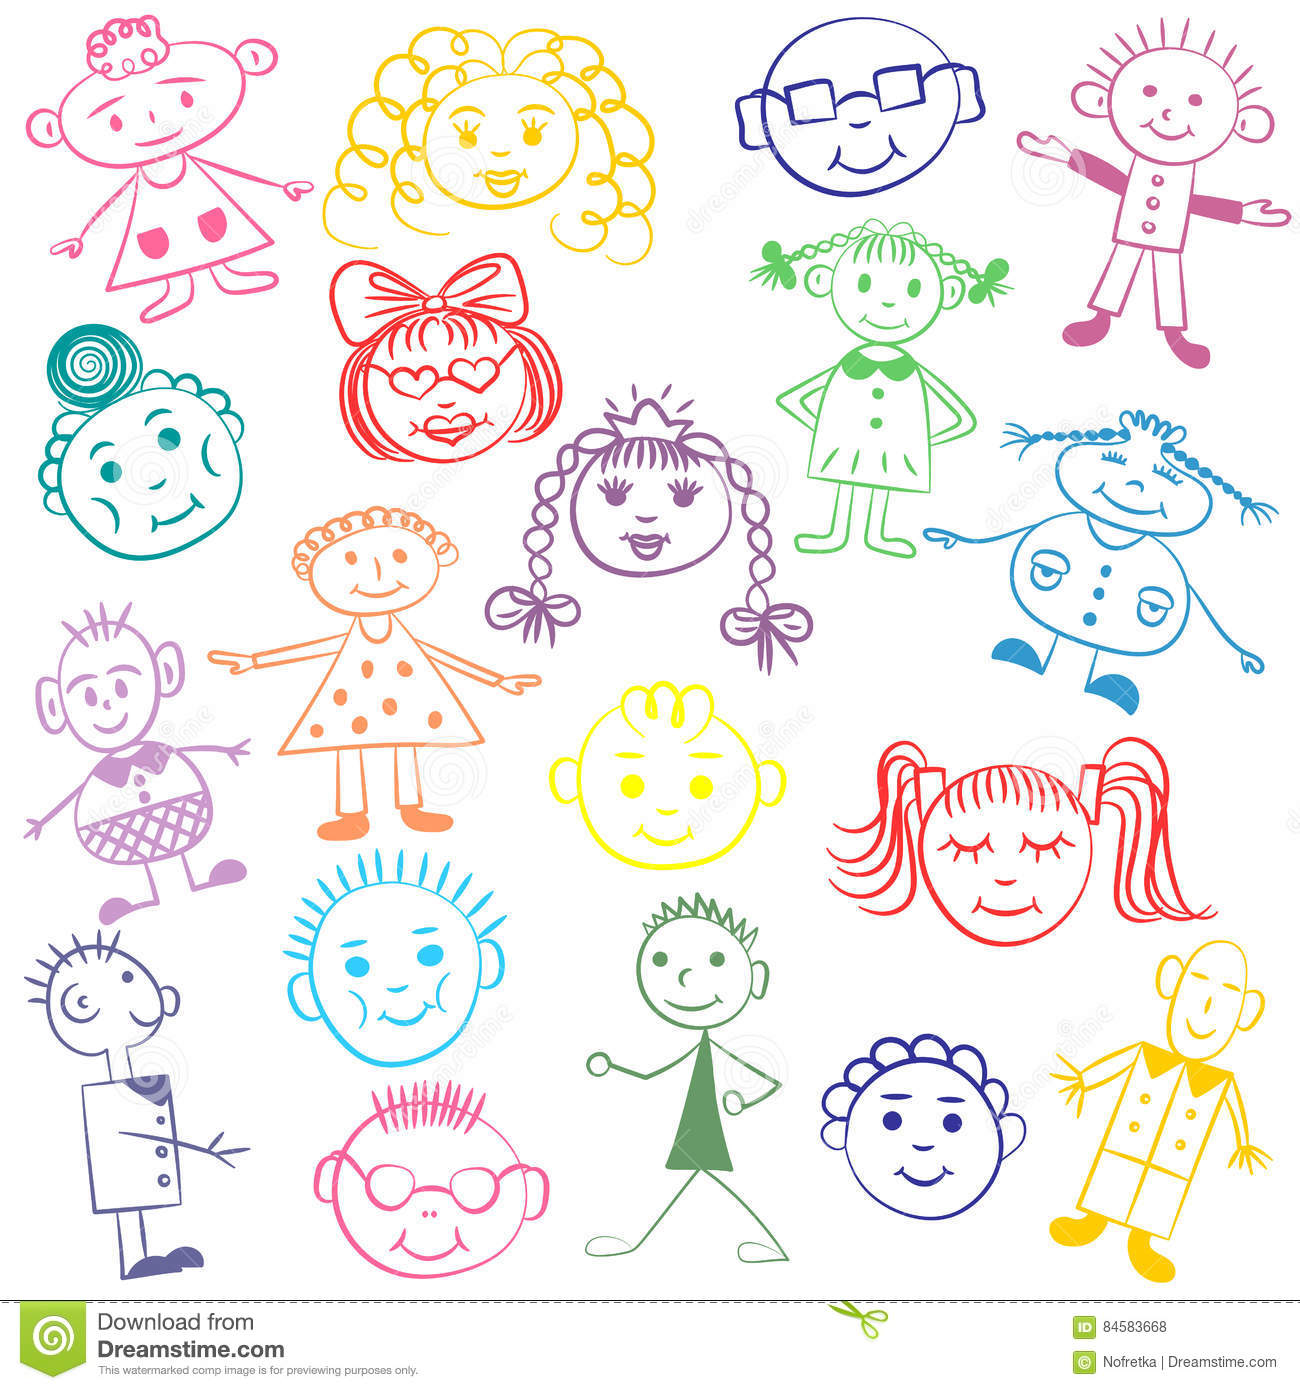 Colorful Cute Drawings For Kids